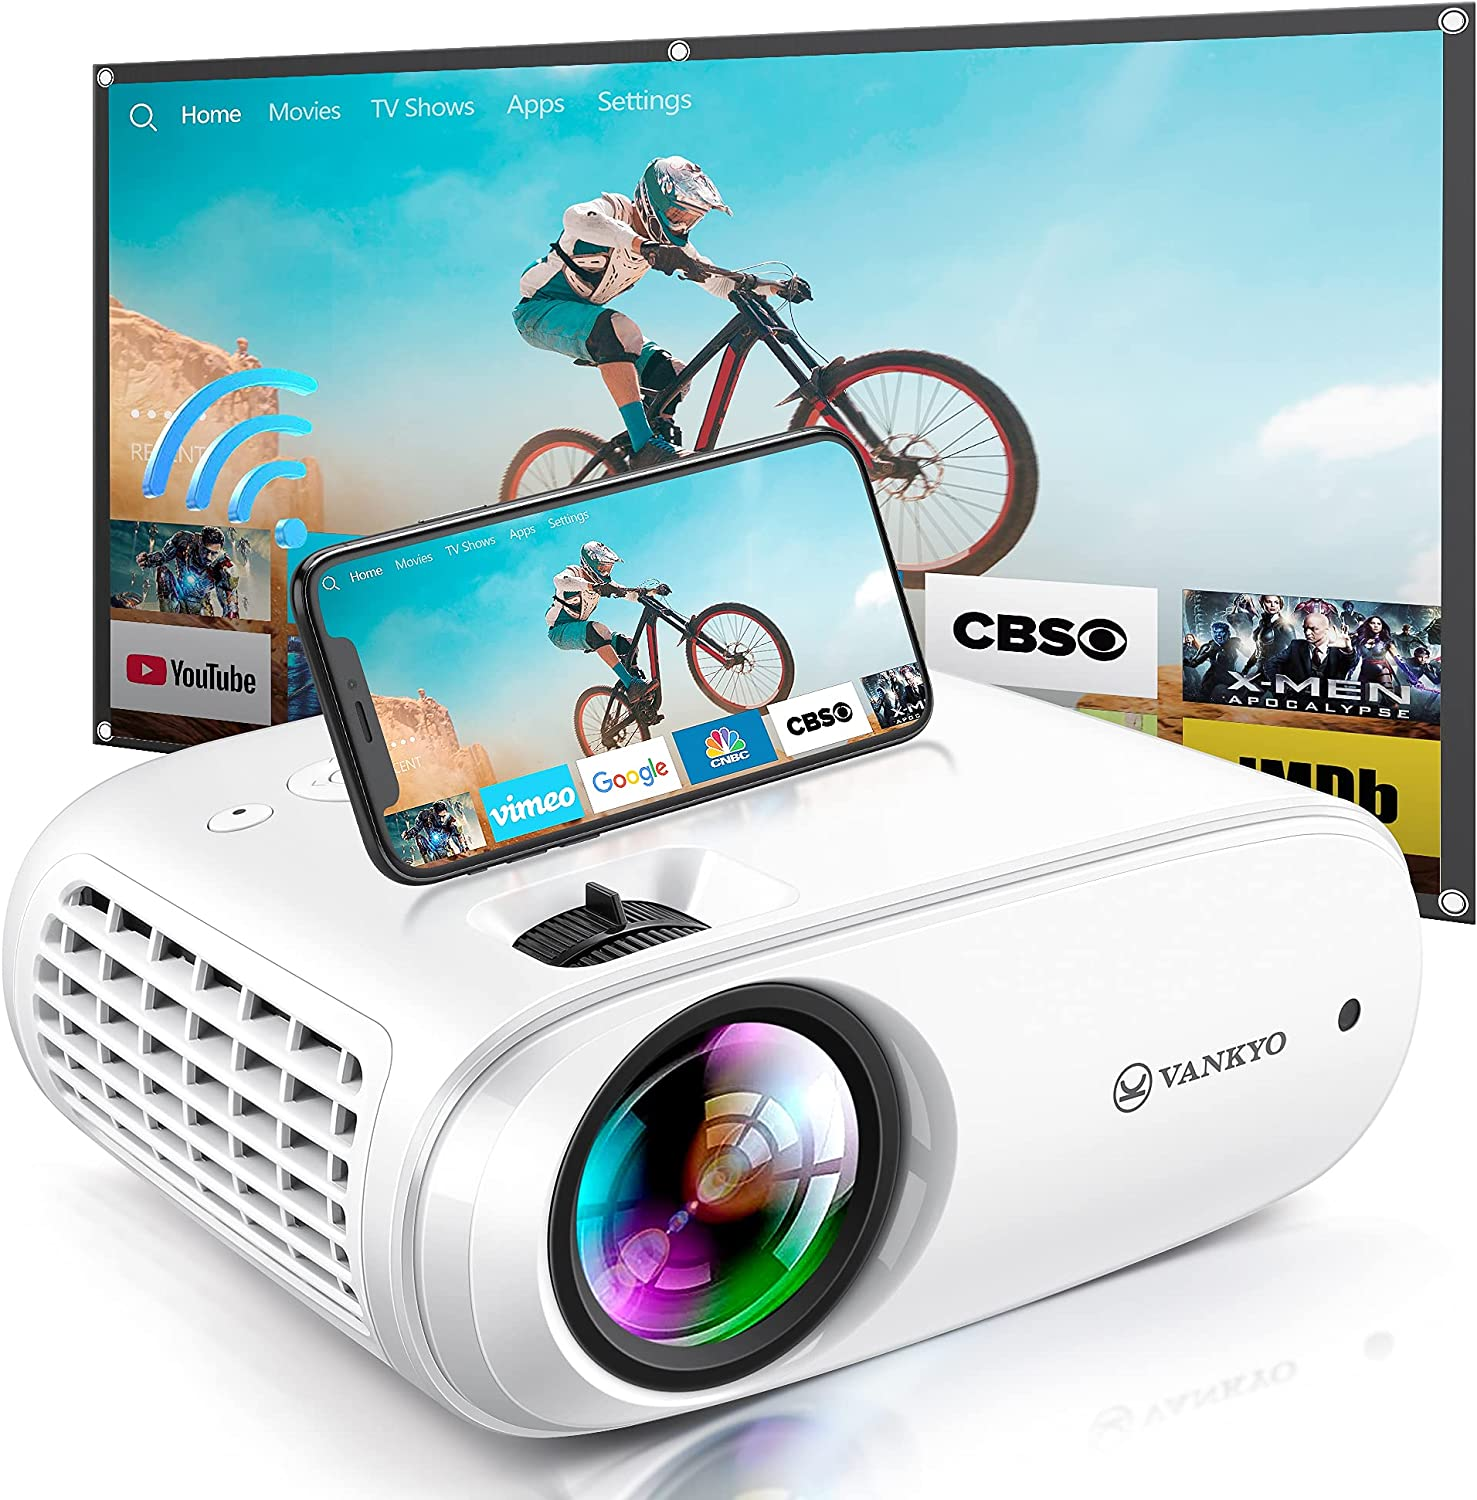 Mini Projector, VankyoProjector Supports Full HD 1080P & 220'' Display, Wi-Fi Portable Video Projector w/ 55000 Hrs Lamp Life & 100'' Screen for Home & Outdoors, Compatible with TV Stick, PS4, HDMI